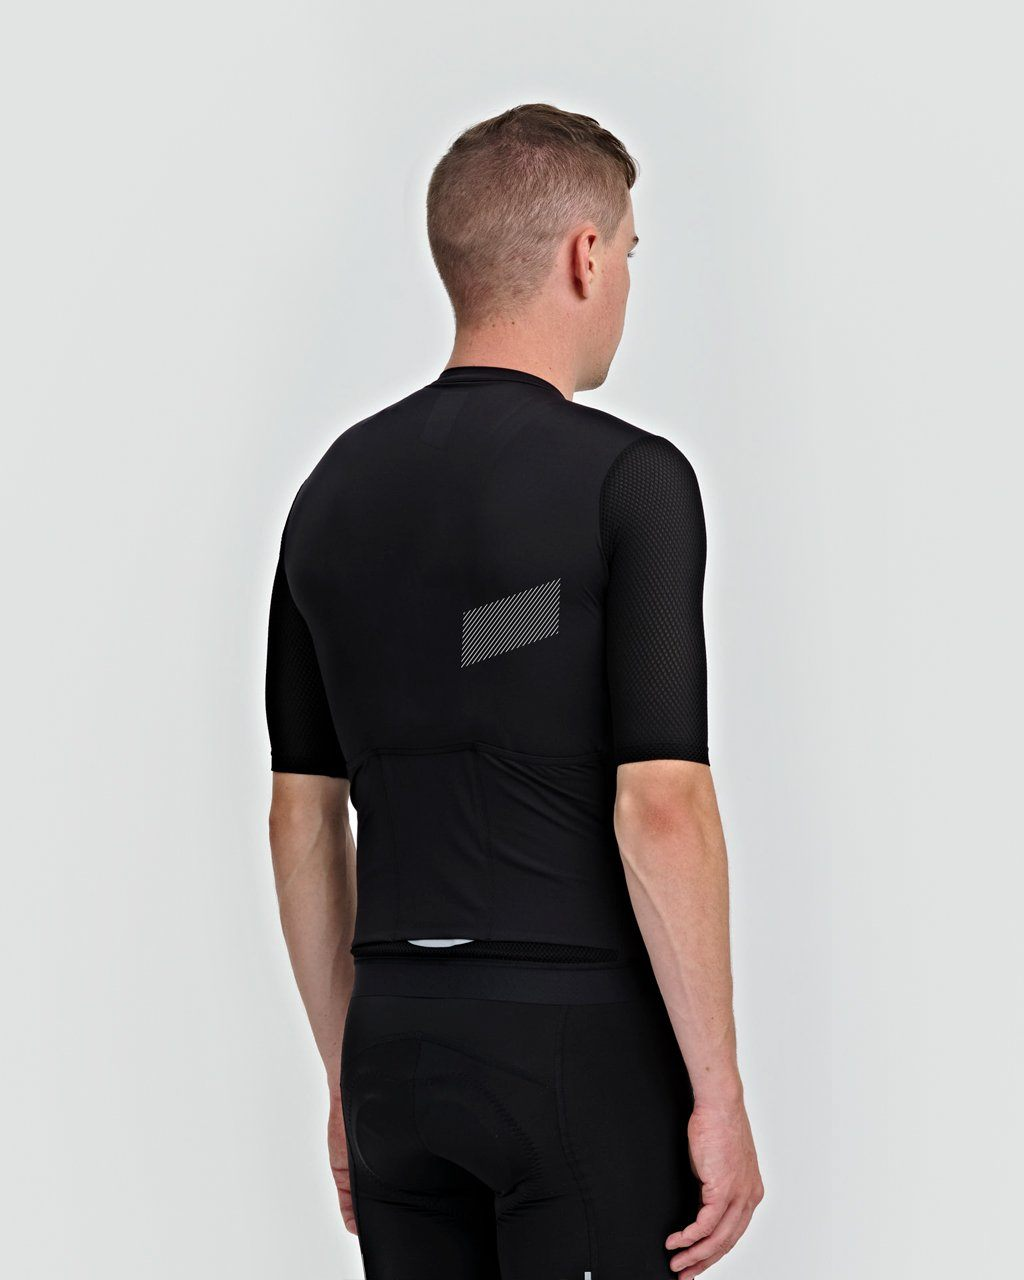 MAAP Echo Pro Base Jersey - Black Cycling Jersey MAAP